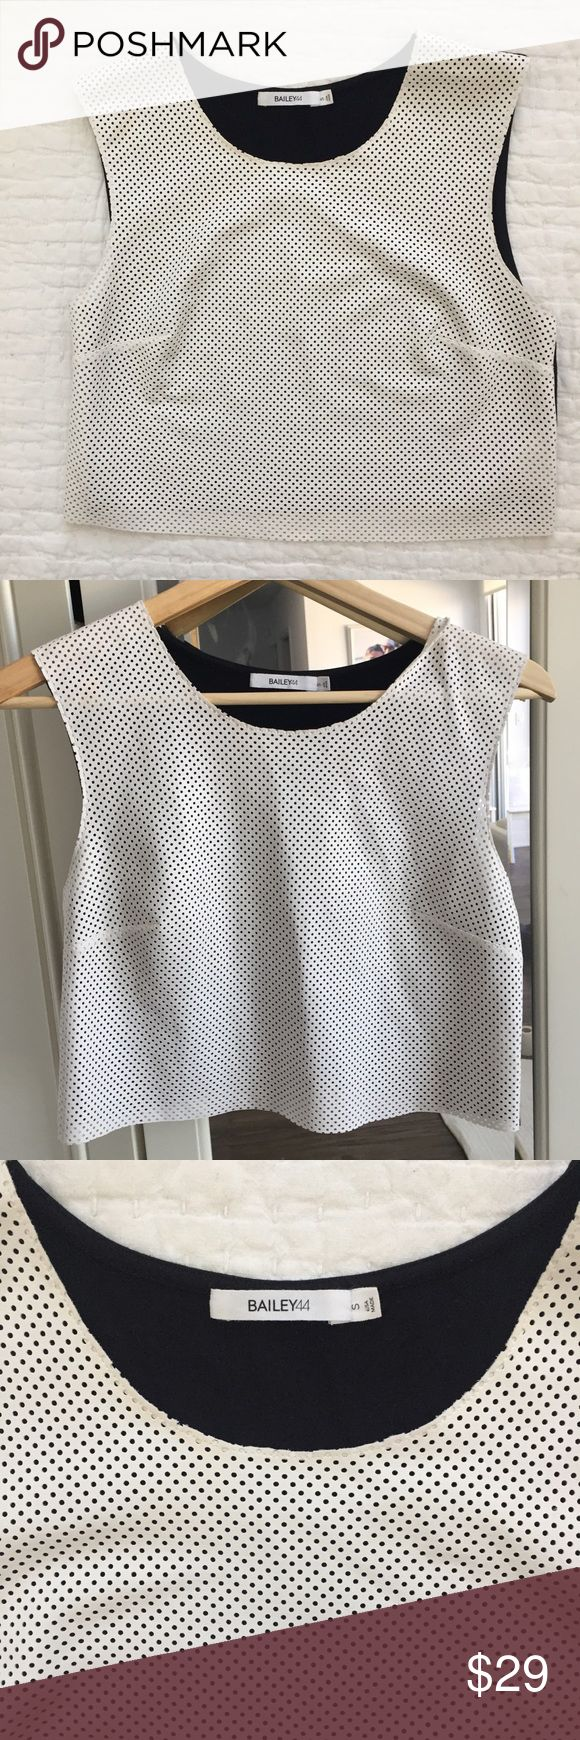 Bailey 44 Faux Leather Crop Top size small Bailey 44 Faux Leather Crop Top size small. Retail 89 dollars. Never worn excellent Condition. Bailey 44 Tops Crop Tops